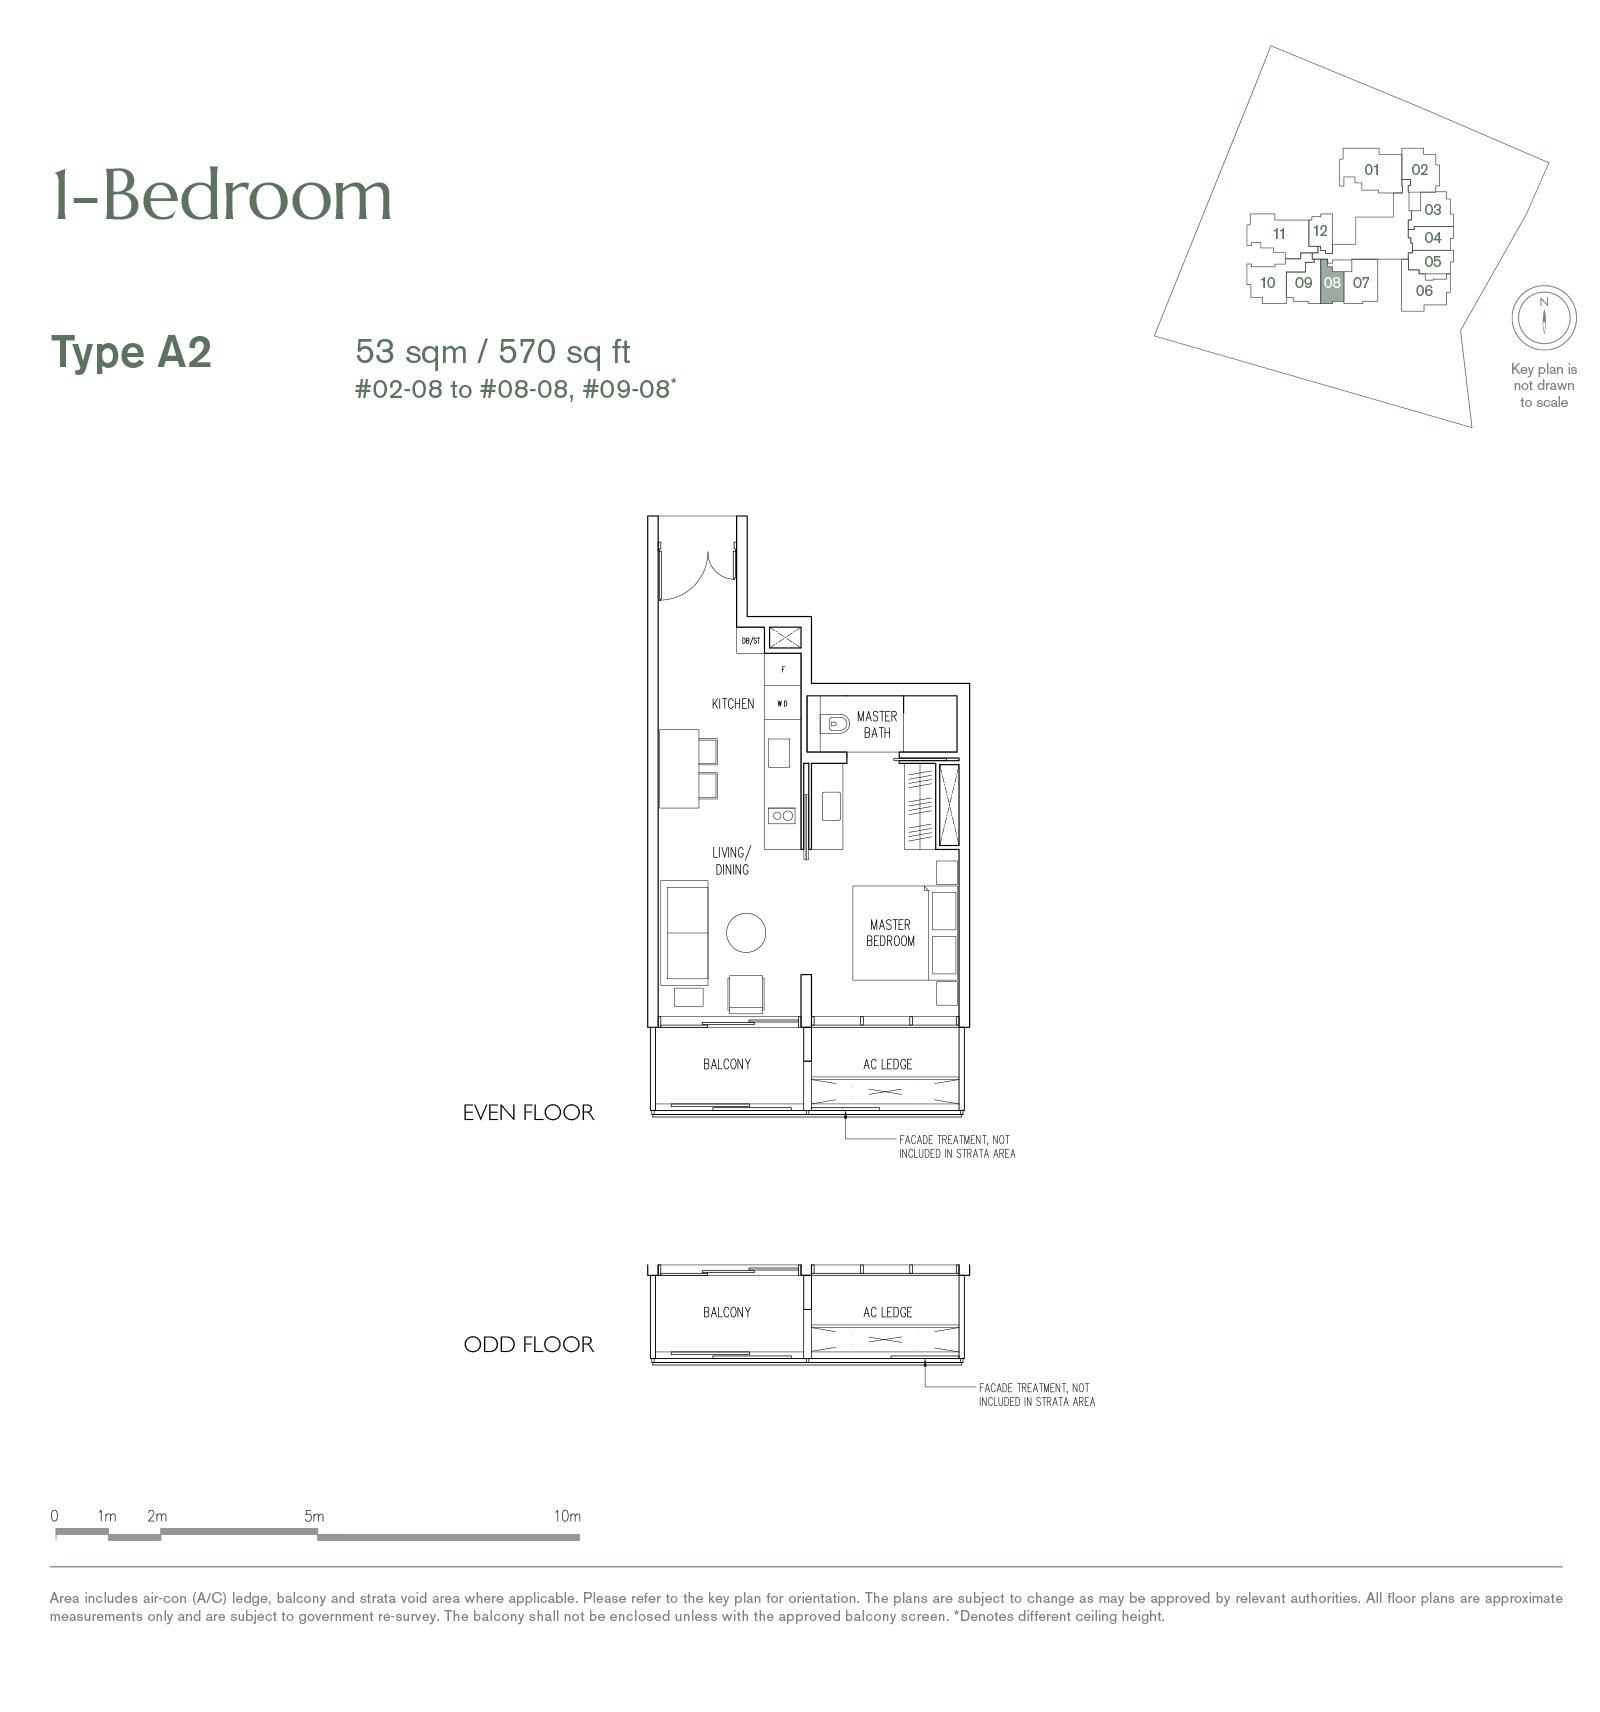 19 Nassim 纳森山公寓 floor plan 1-bedroom A2